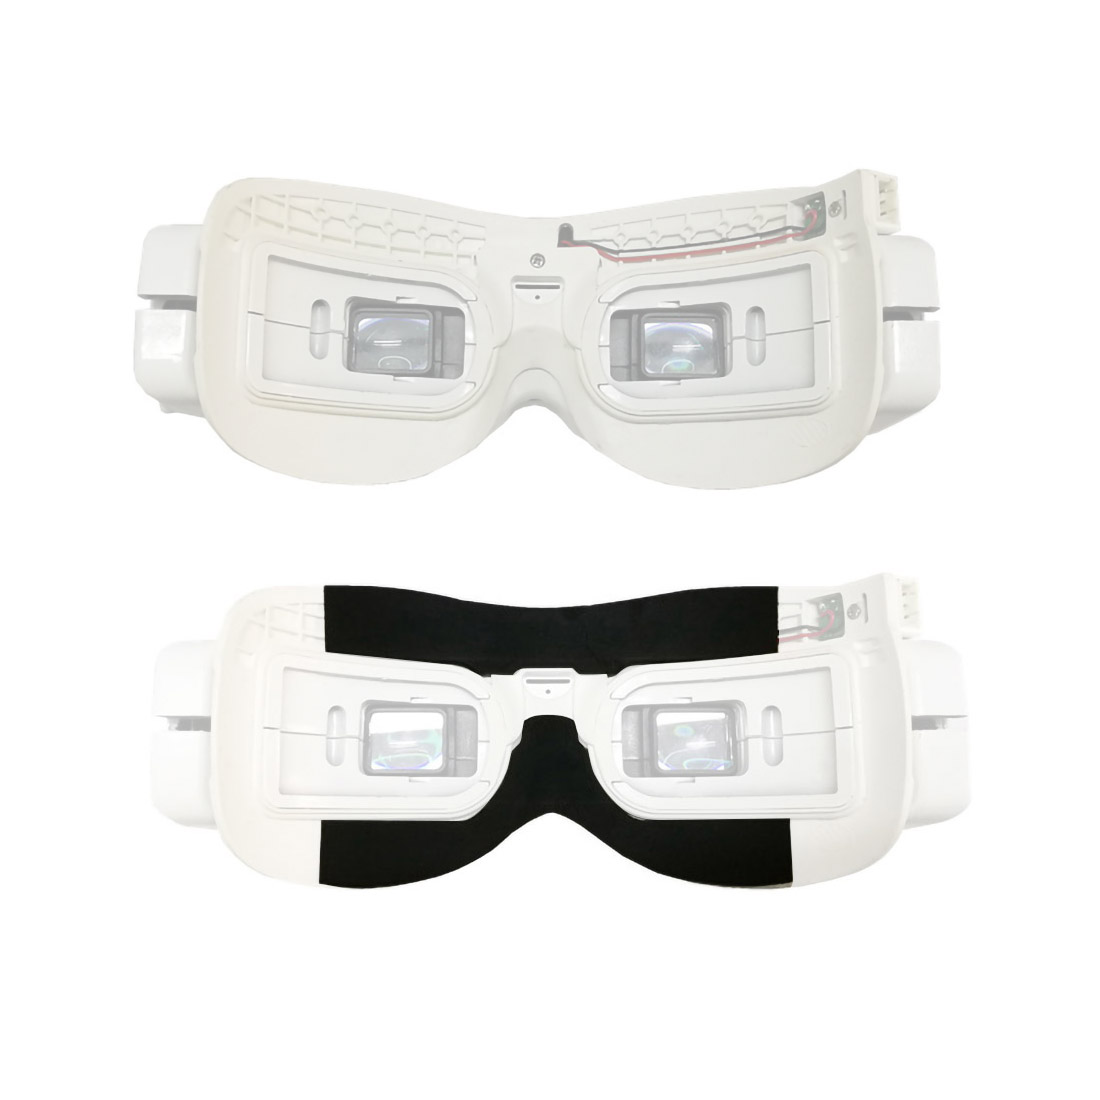 1Set Anti Light Leakage Faceplate Pads Sticker For Fatshark FPV Goggles Video Headset Glasses RC Models Accessories Spare Parts